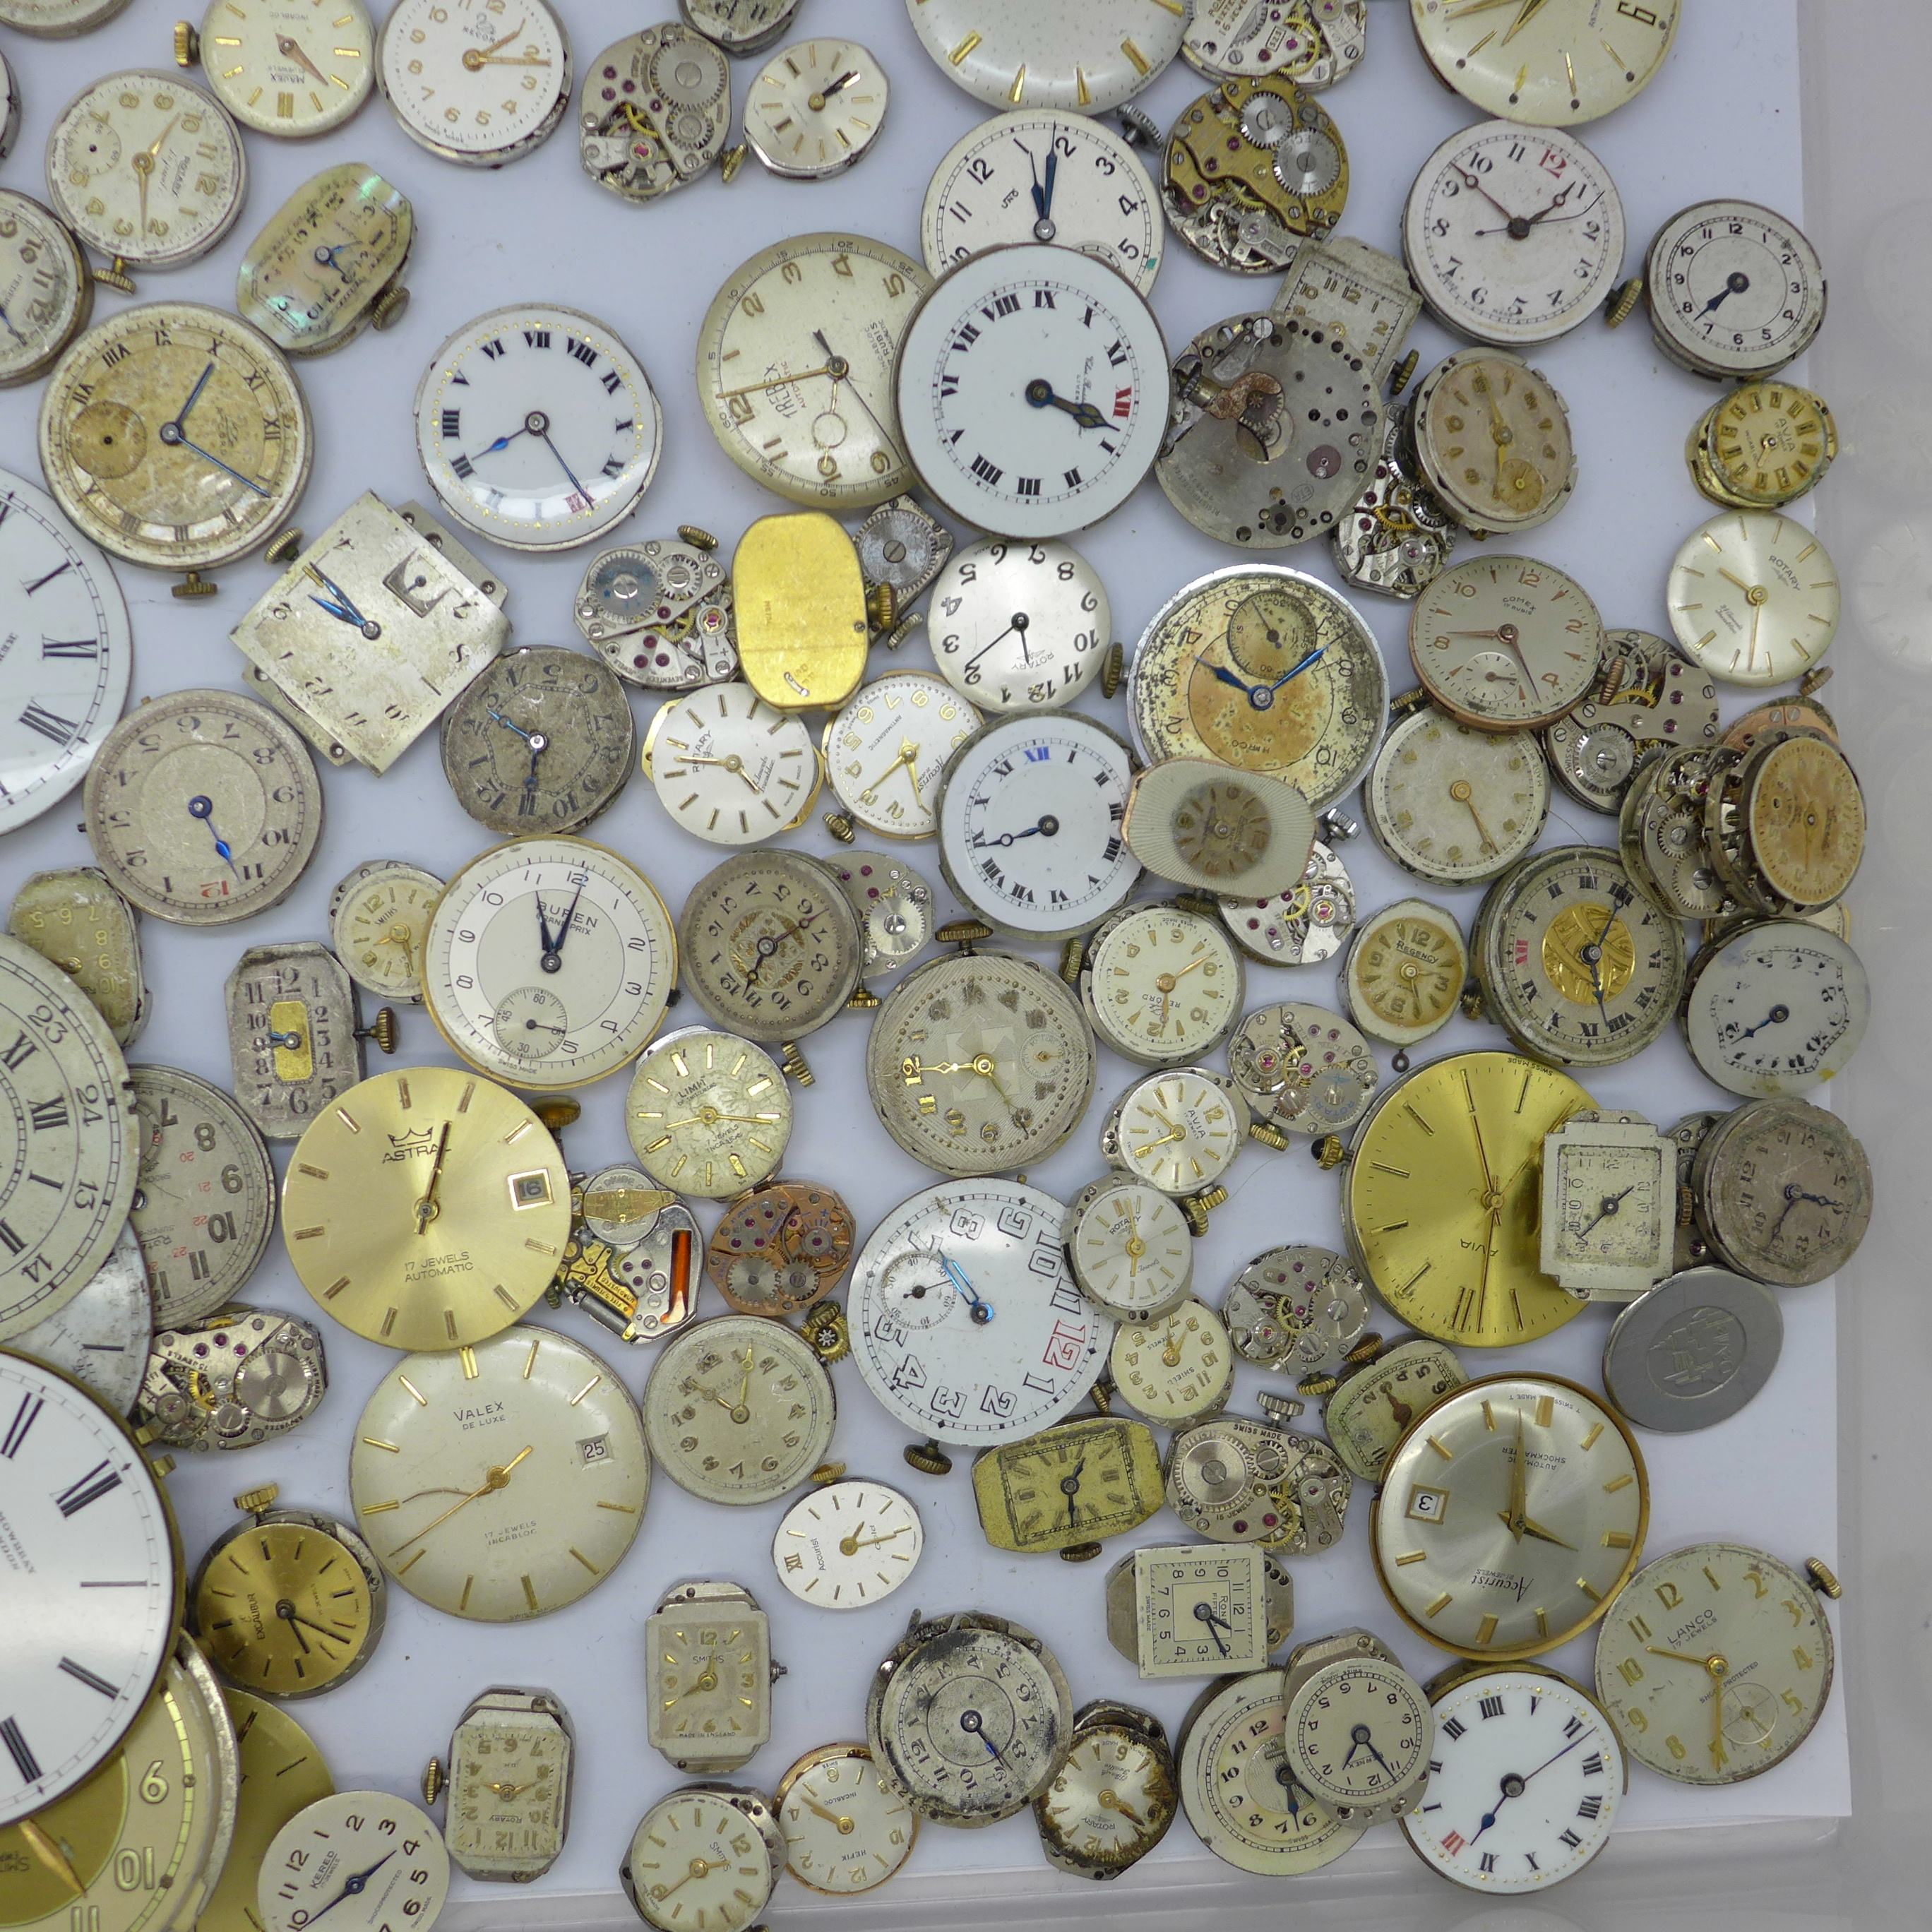 Lady's and gentleman's wristwatch movements including Tissot, Record, Waltham, Thos Russell, Rotary, - Image 3 of 3